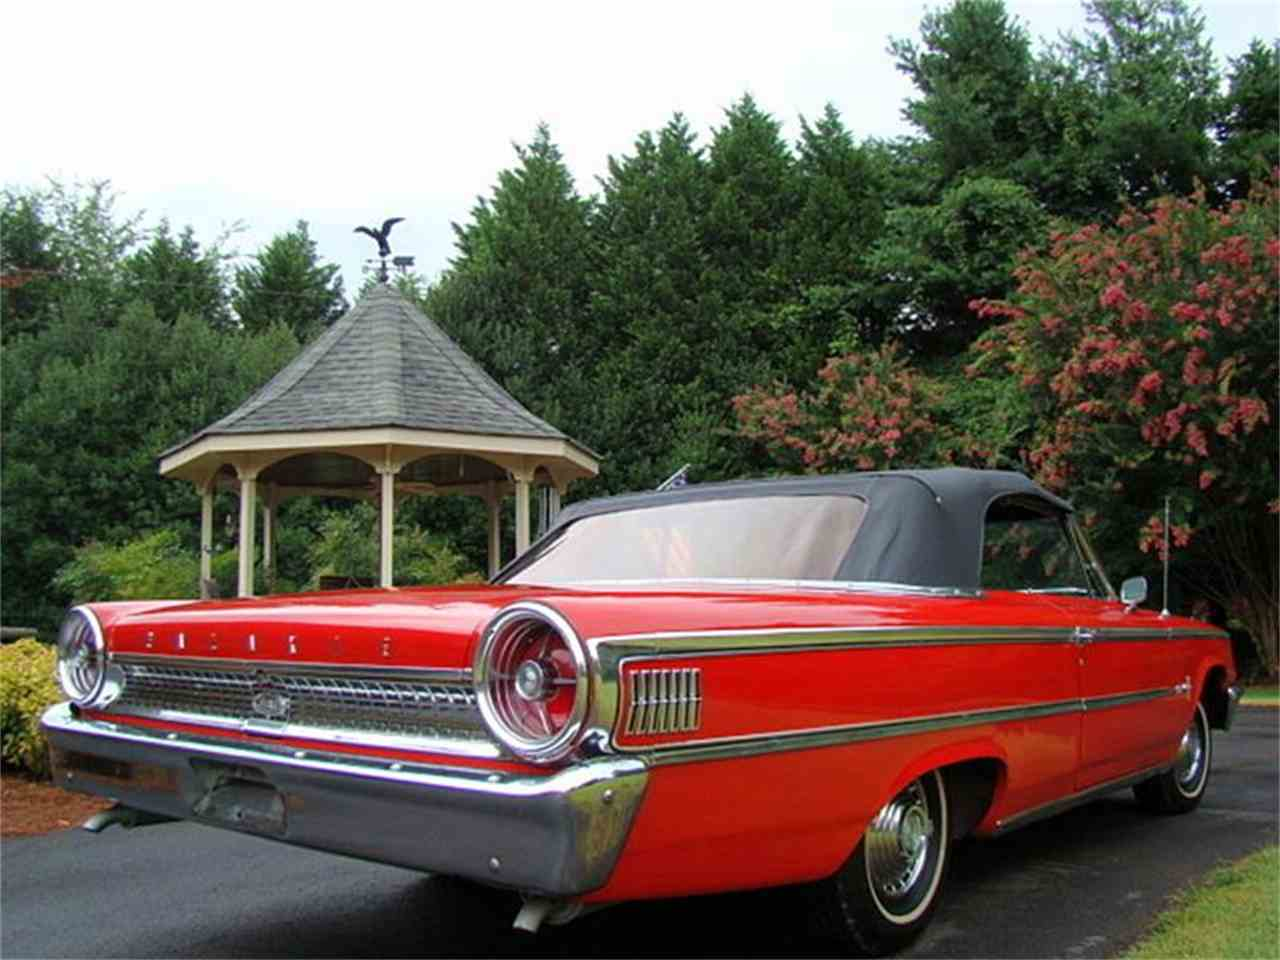 Large Picture of Classic 1963 Ford Galaxie 500 located in San Luis Obispo California - $19,900.00 Offered by Classic Car Guy - LJO9